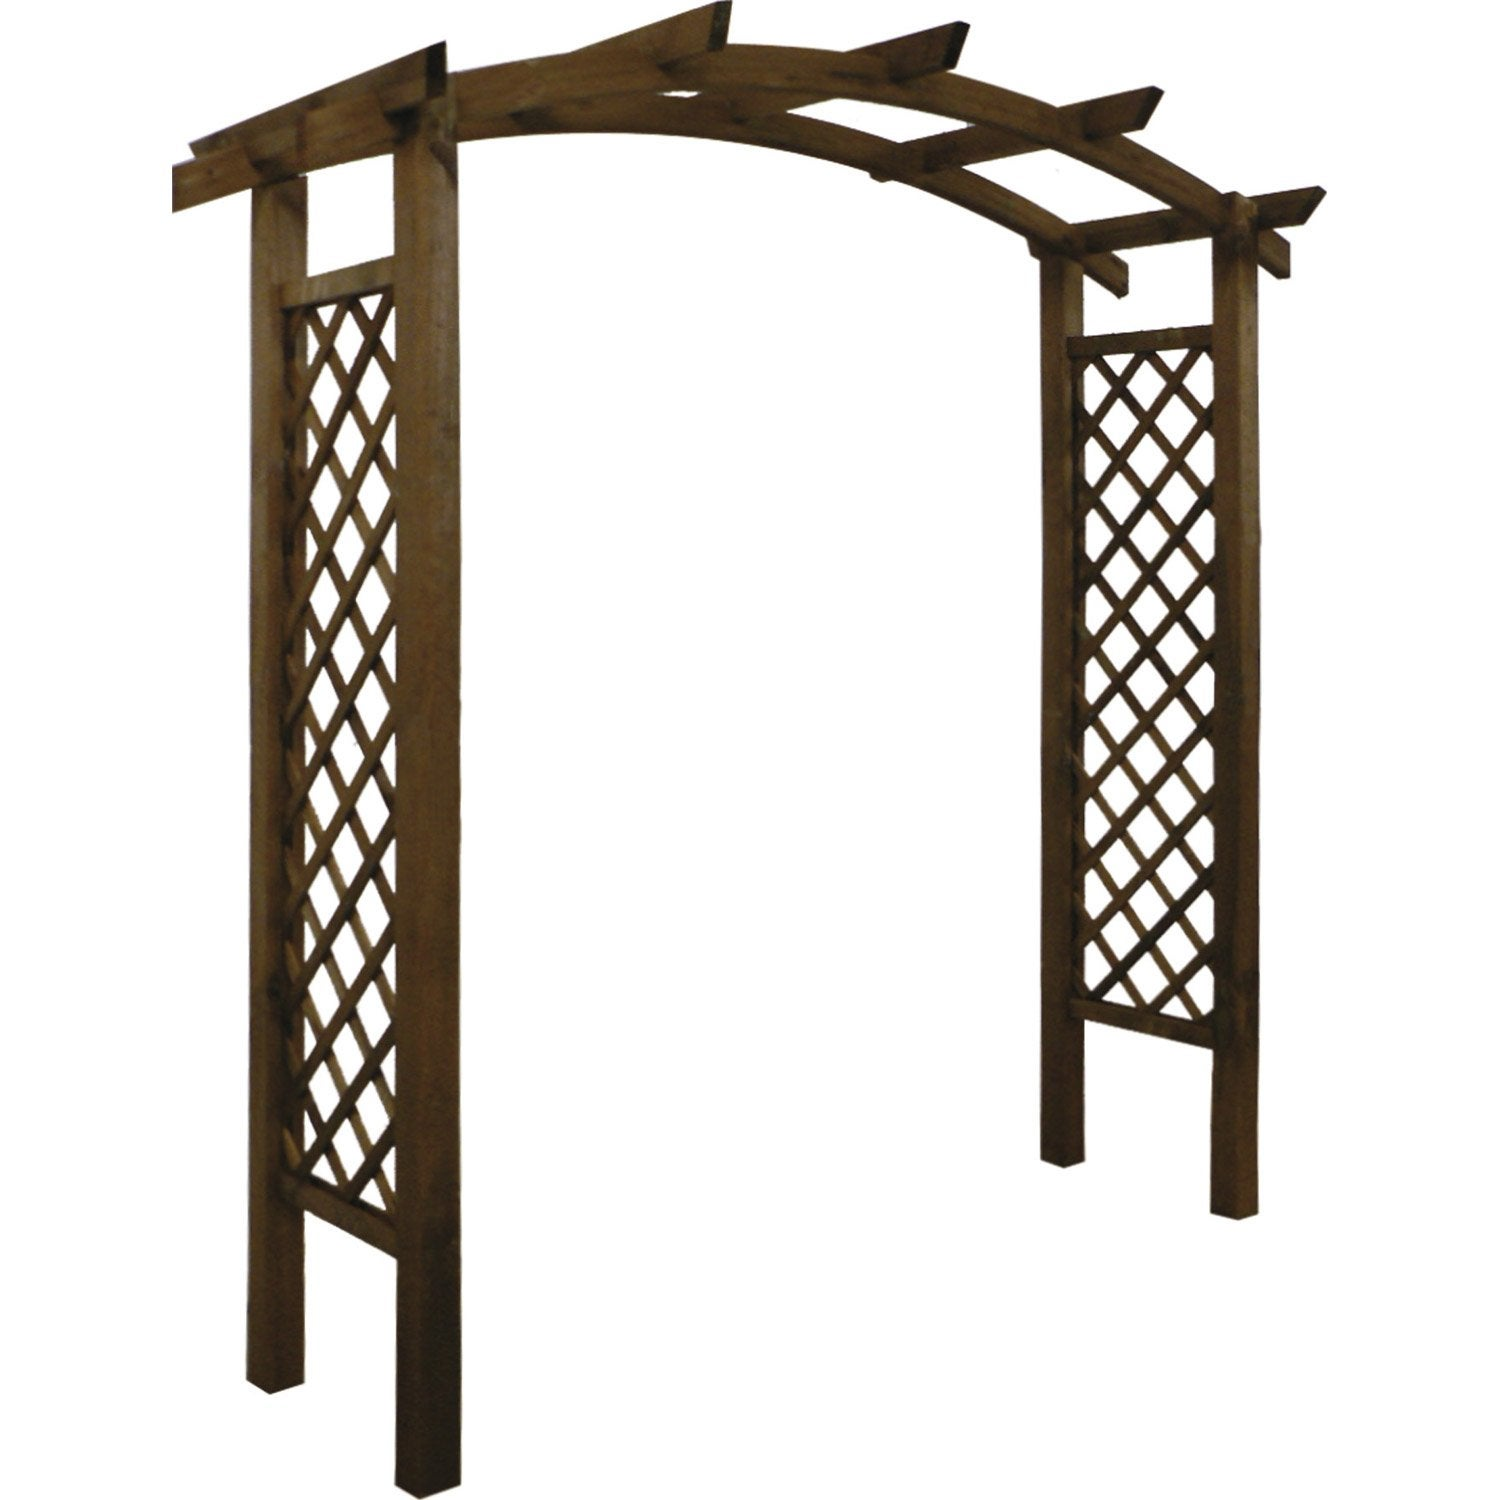 Pergola double burger havane x x cm for Portillon jardin en bois